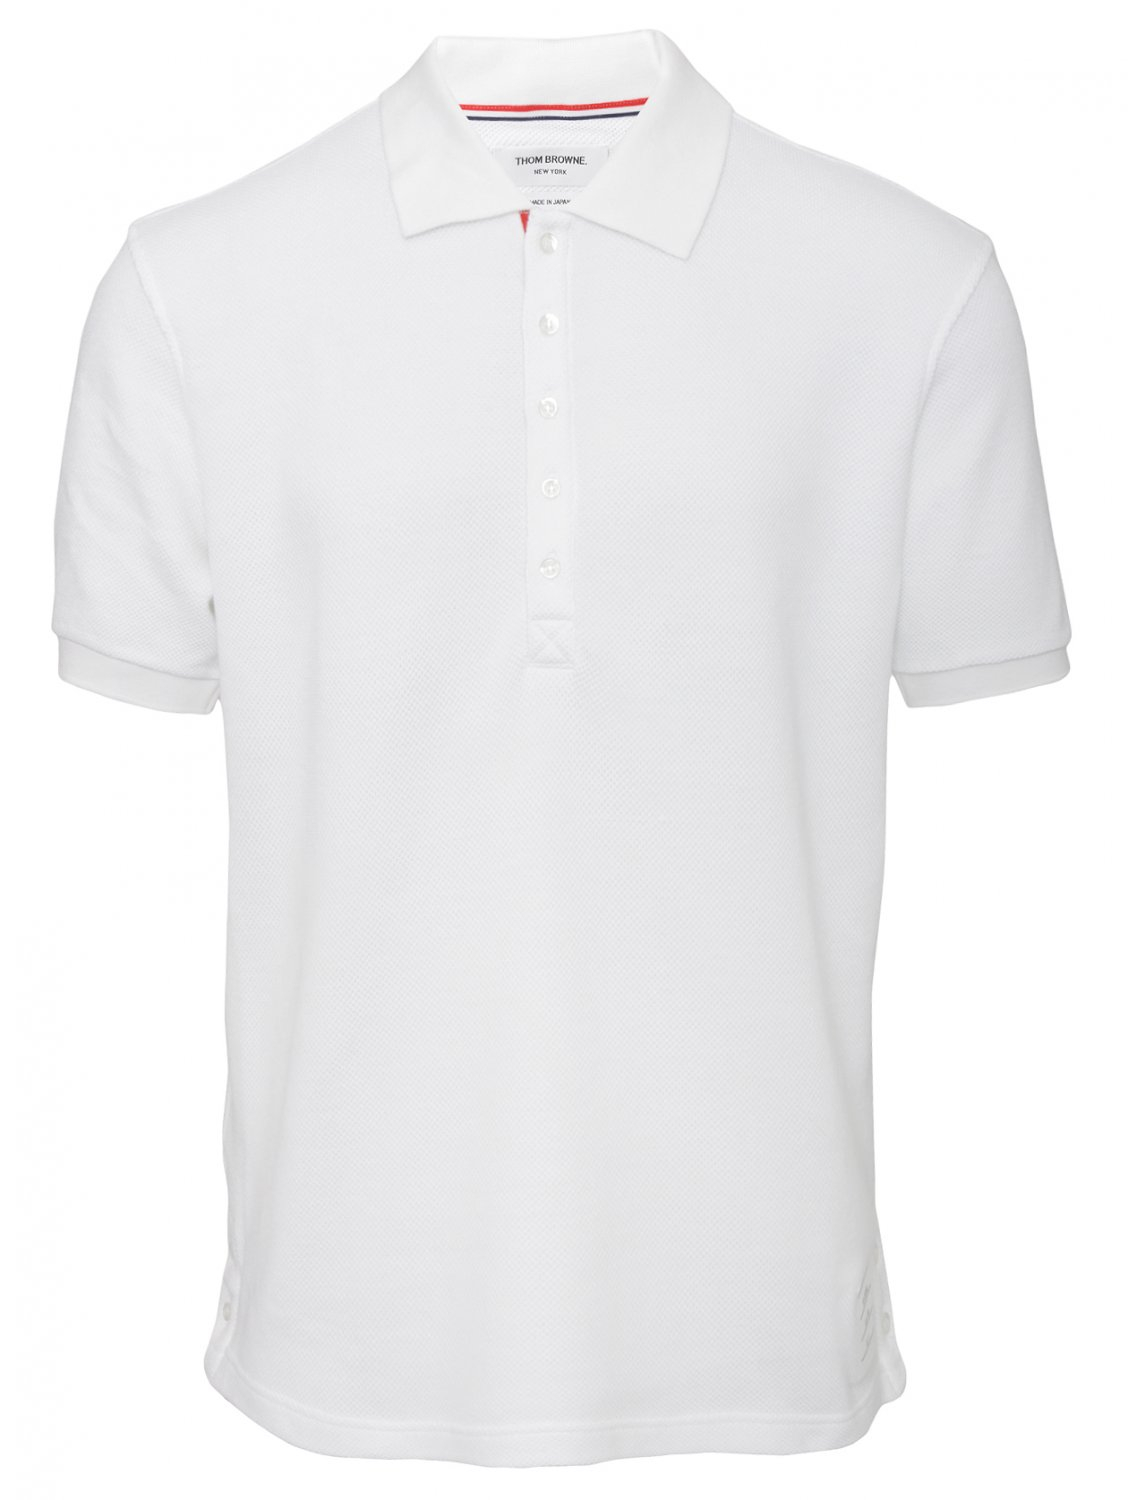 Thom browne knit collar polo shirt white in white for men for Knitted polo shirt mens